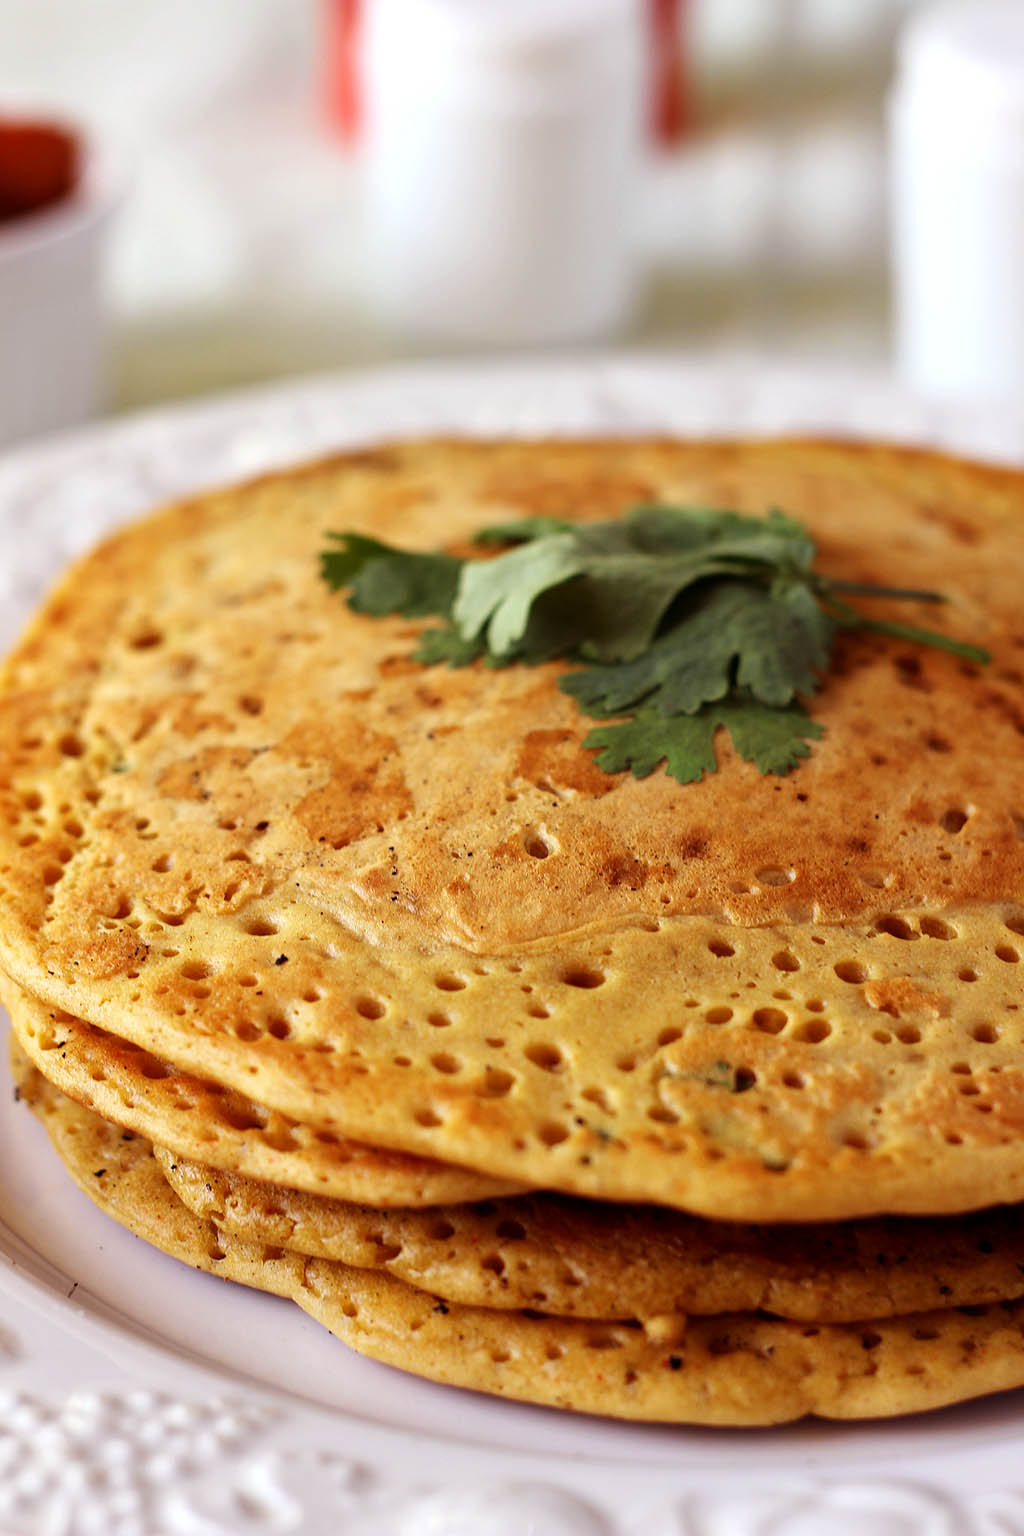 Monica's Indian Express: Chickpea crepes (gluten-free)